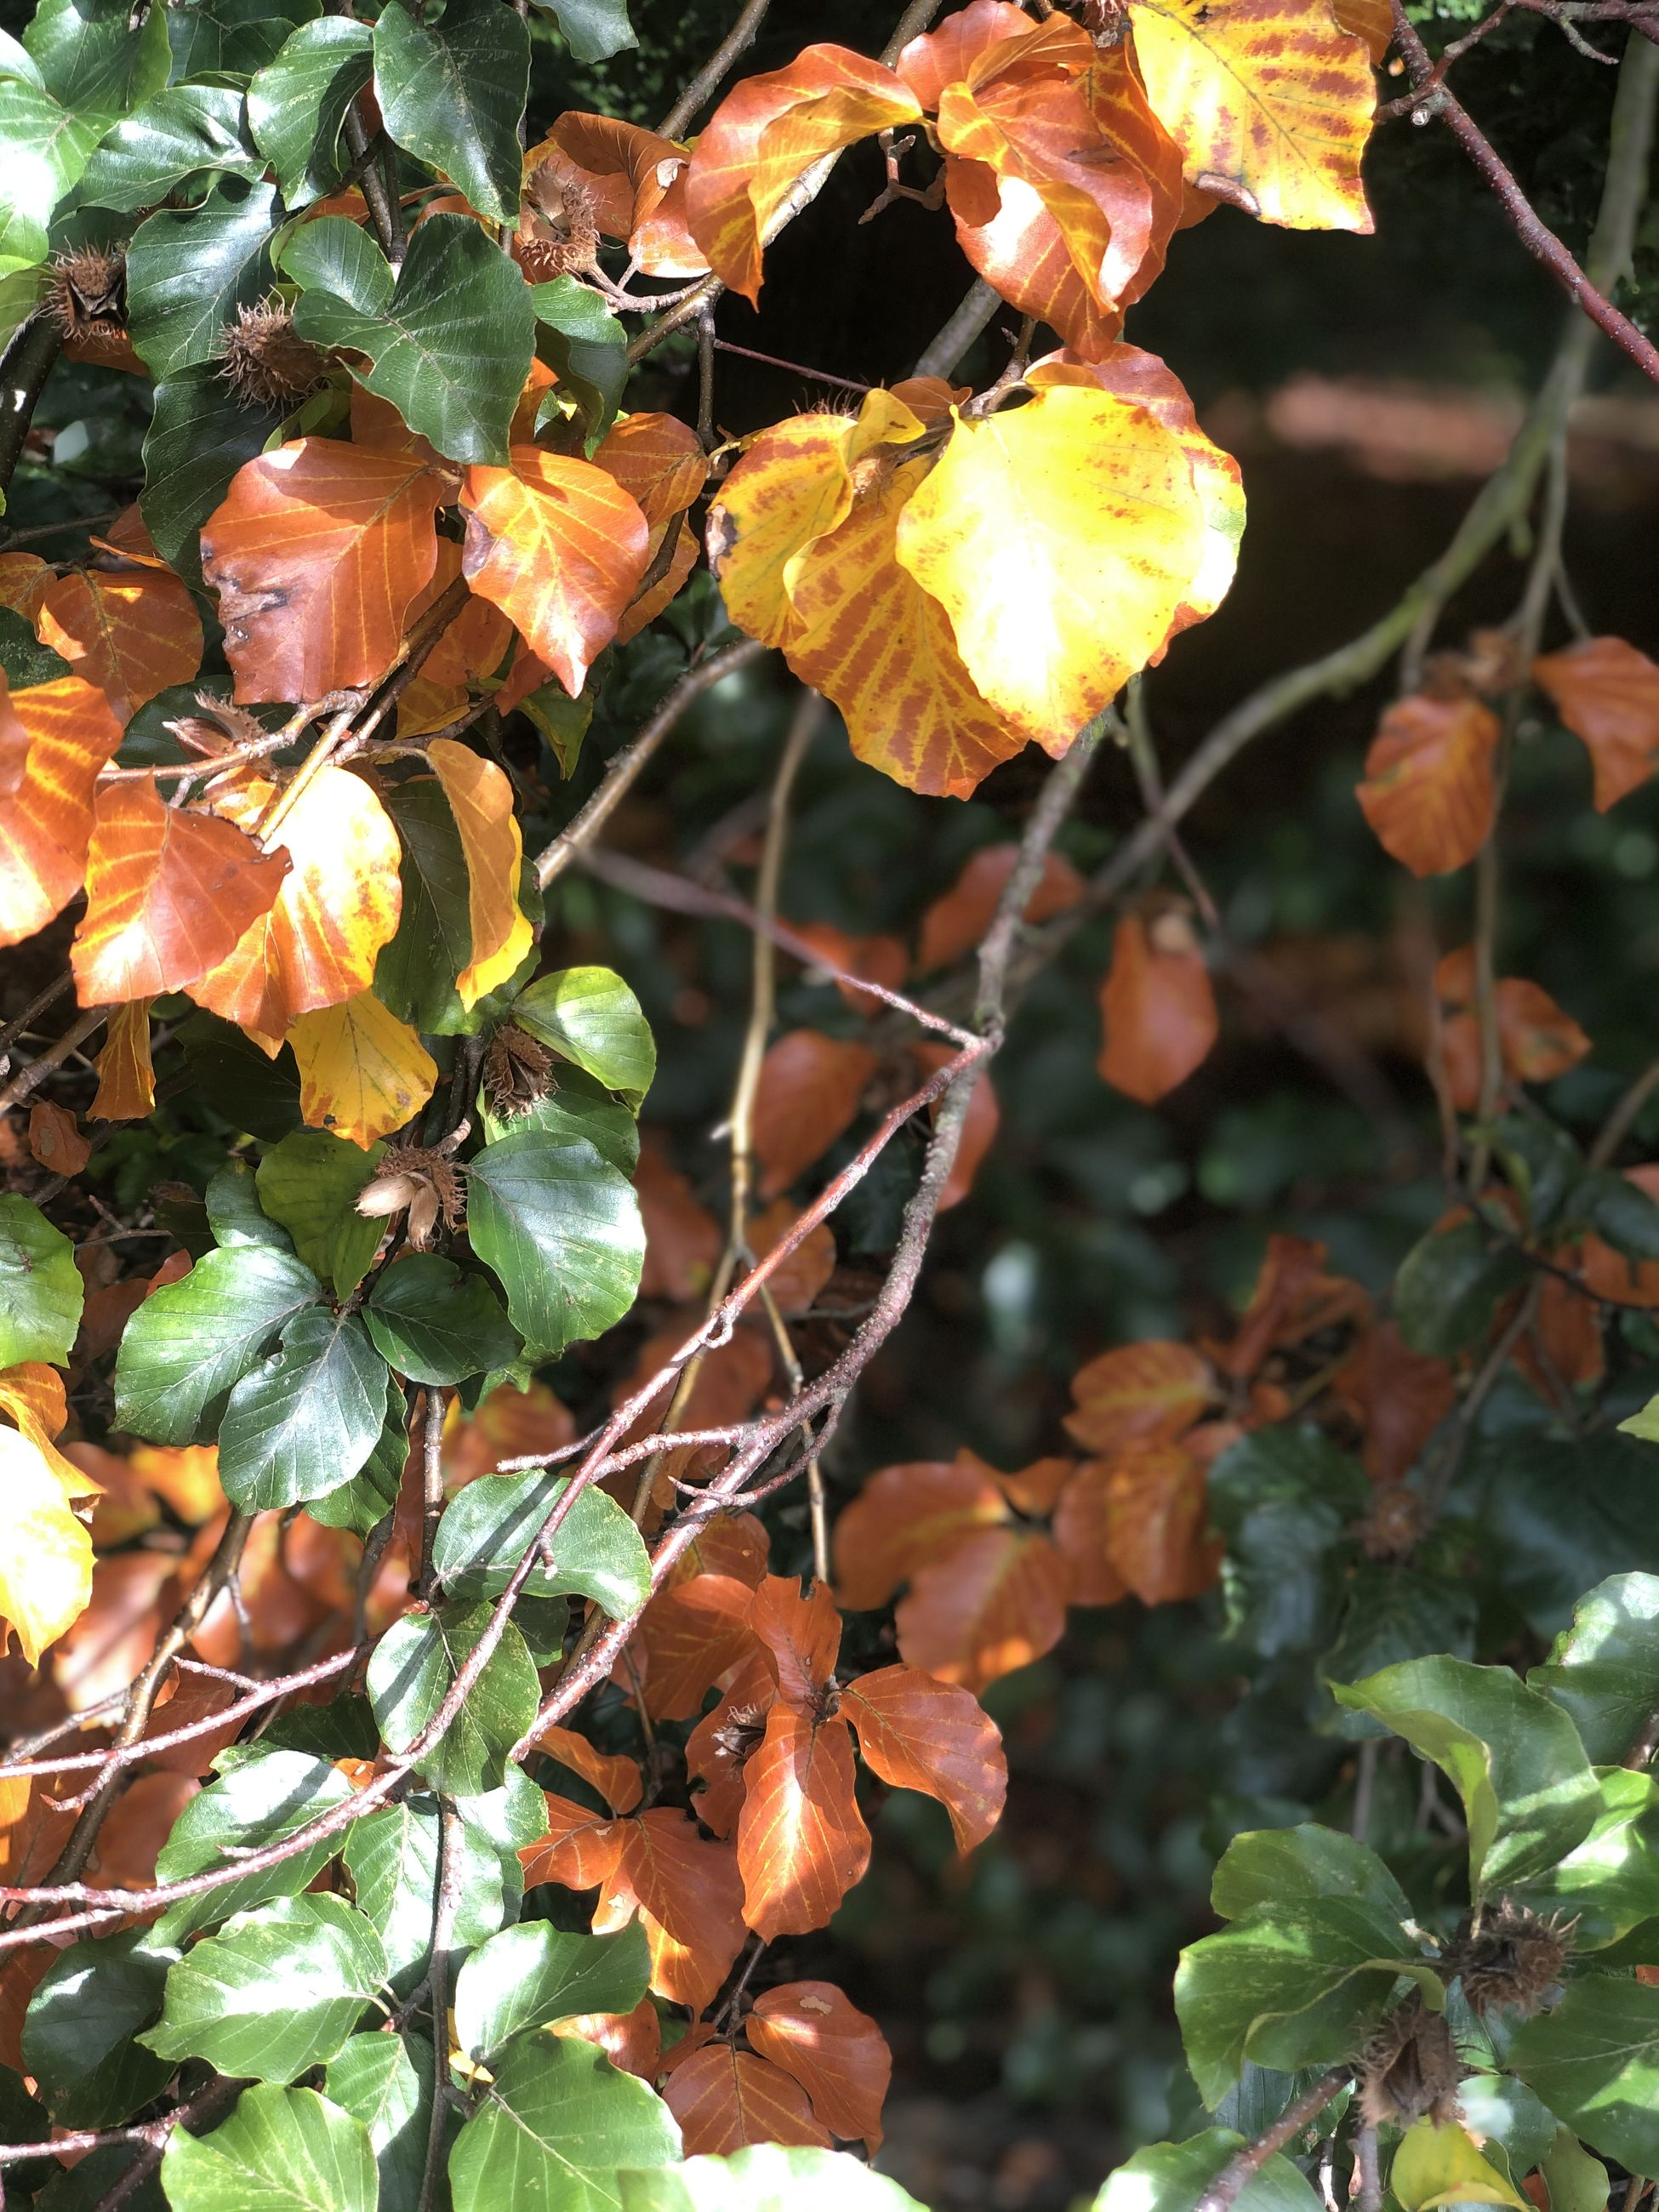 growth, plant, plant part, leaf, nature, beauty in nature, close-up, no people, day, orange color, freshness, fruit, food, focus on foreground, tree, food and drink, healthy eating, vulnerability, outdoors, fragility, change, leaves